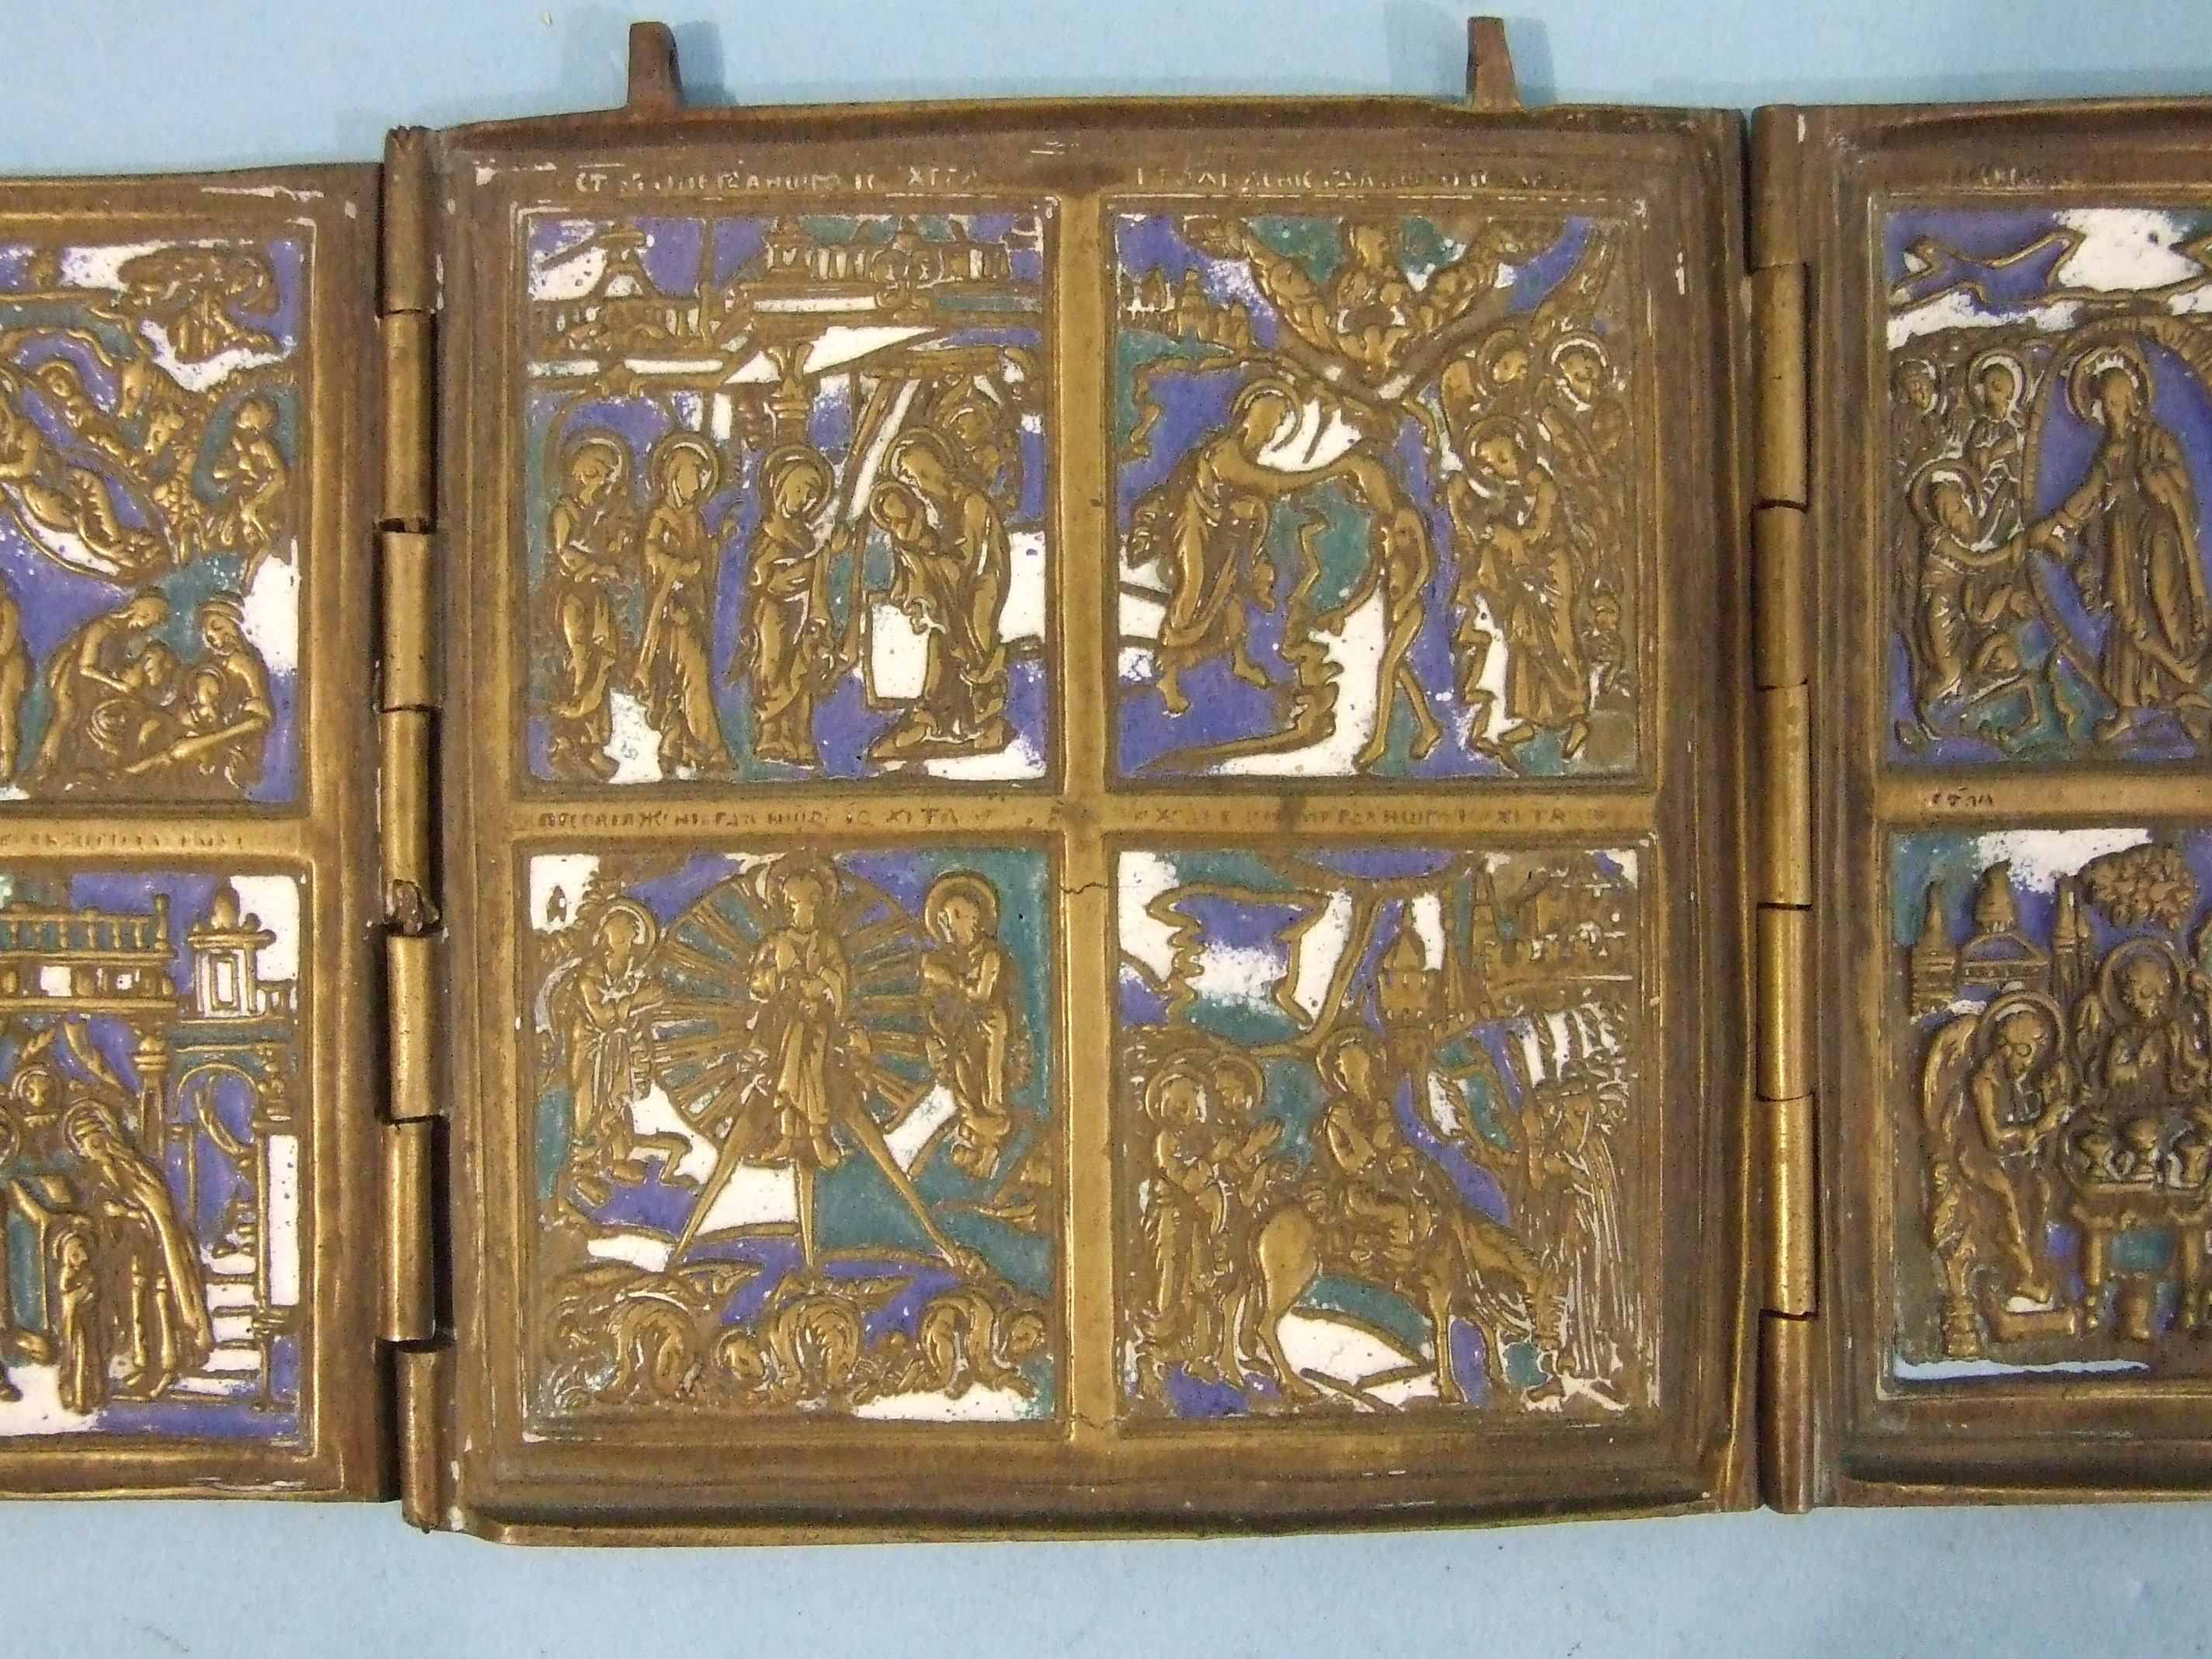 Lot 148 - An antique brass and enamelled triptych icon, each of the three hinged panels divided into four